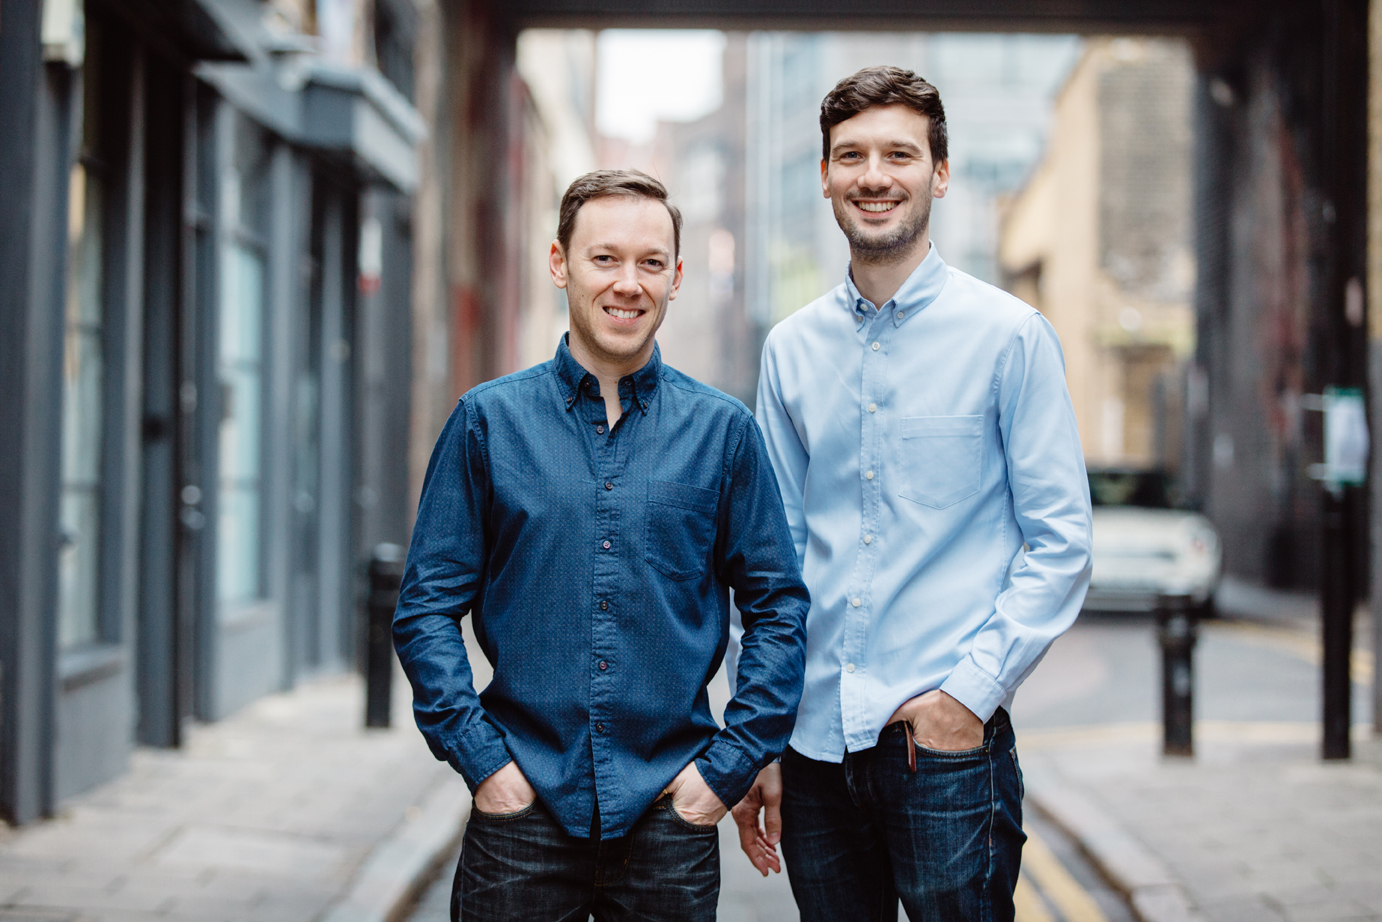 Daen Heuston and Thomas Belloy, Founders of Vitality+Awesomeness